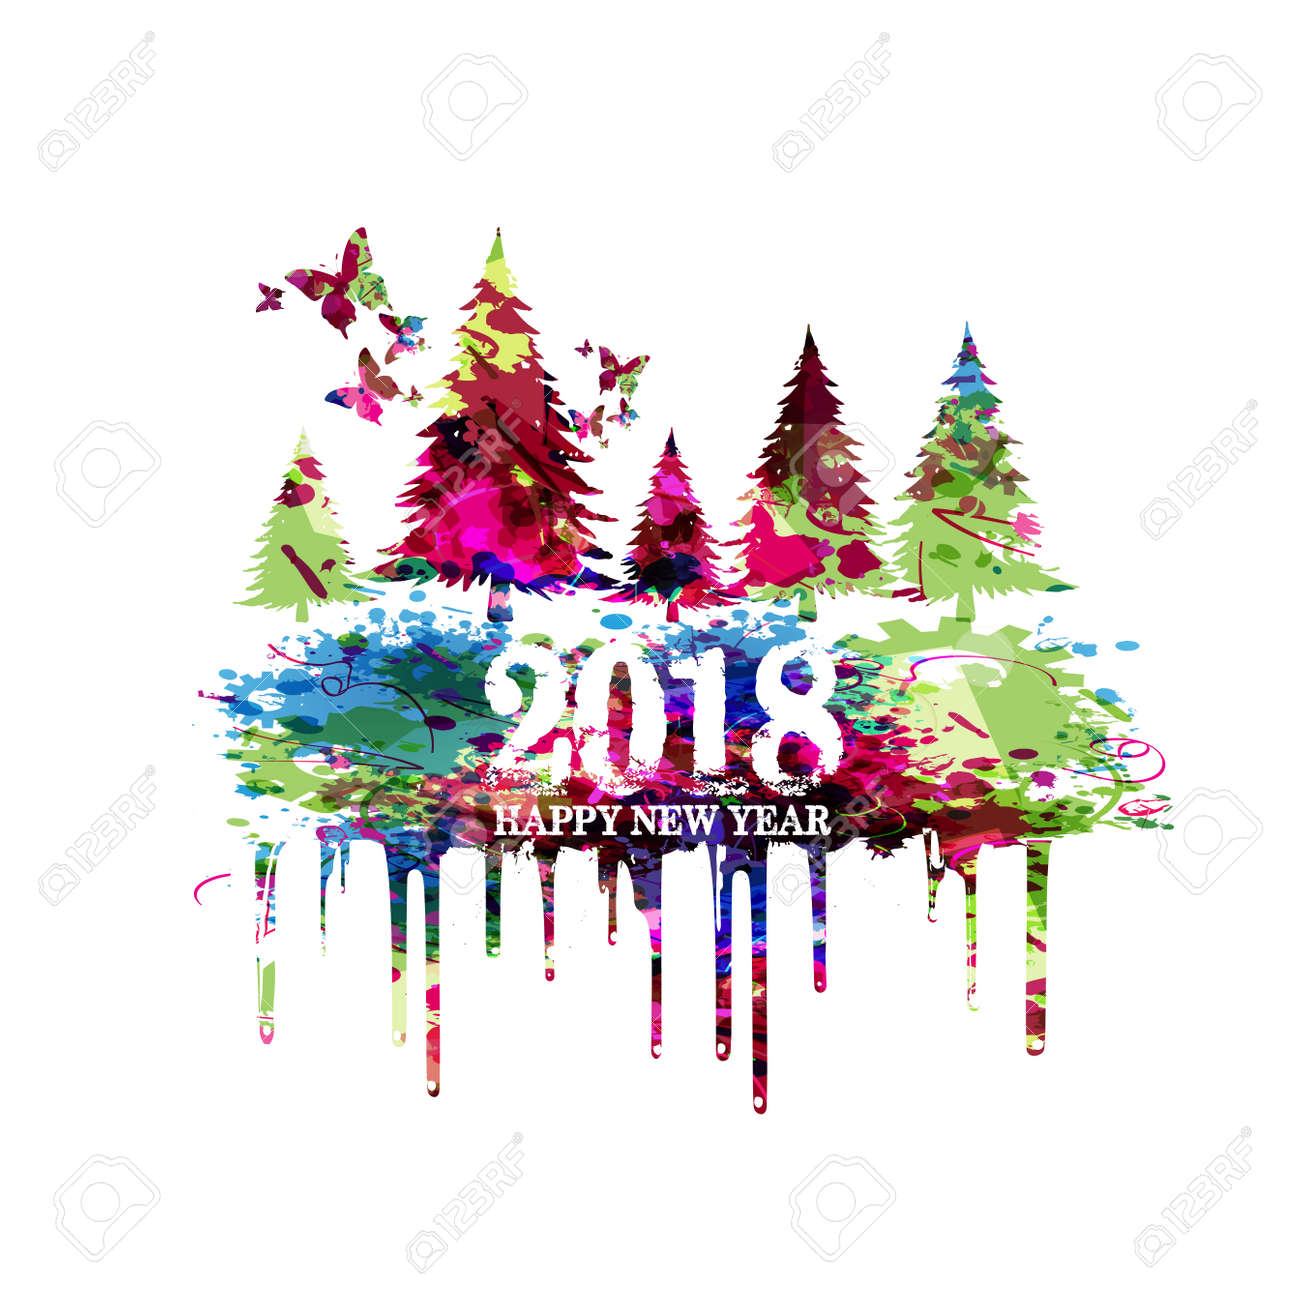 Colorful Christmas Tree Vector.Christmas Trees Vector Illustration Happy New Year 2018 Colorful